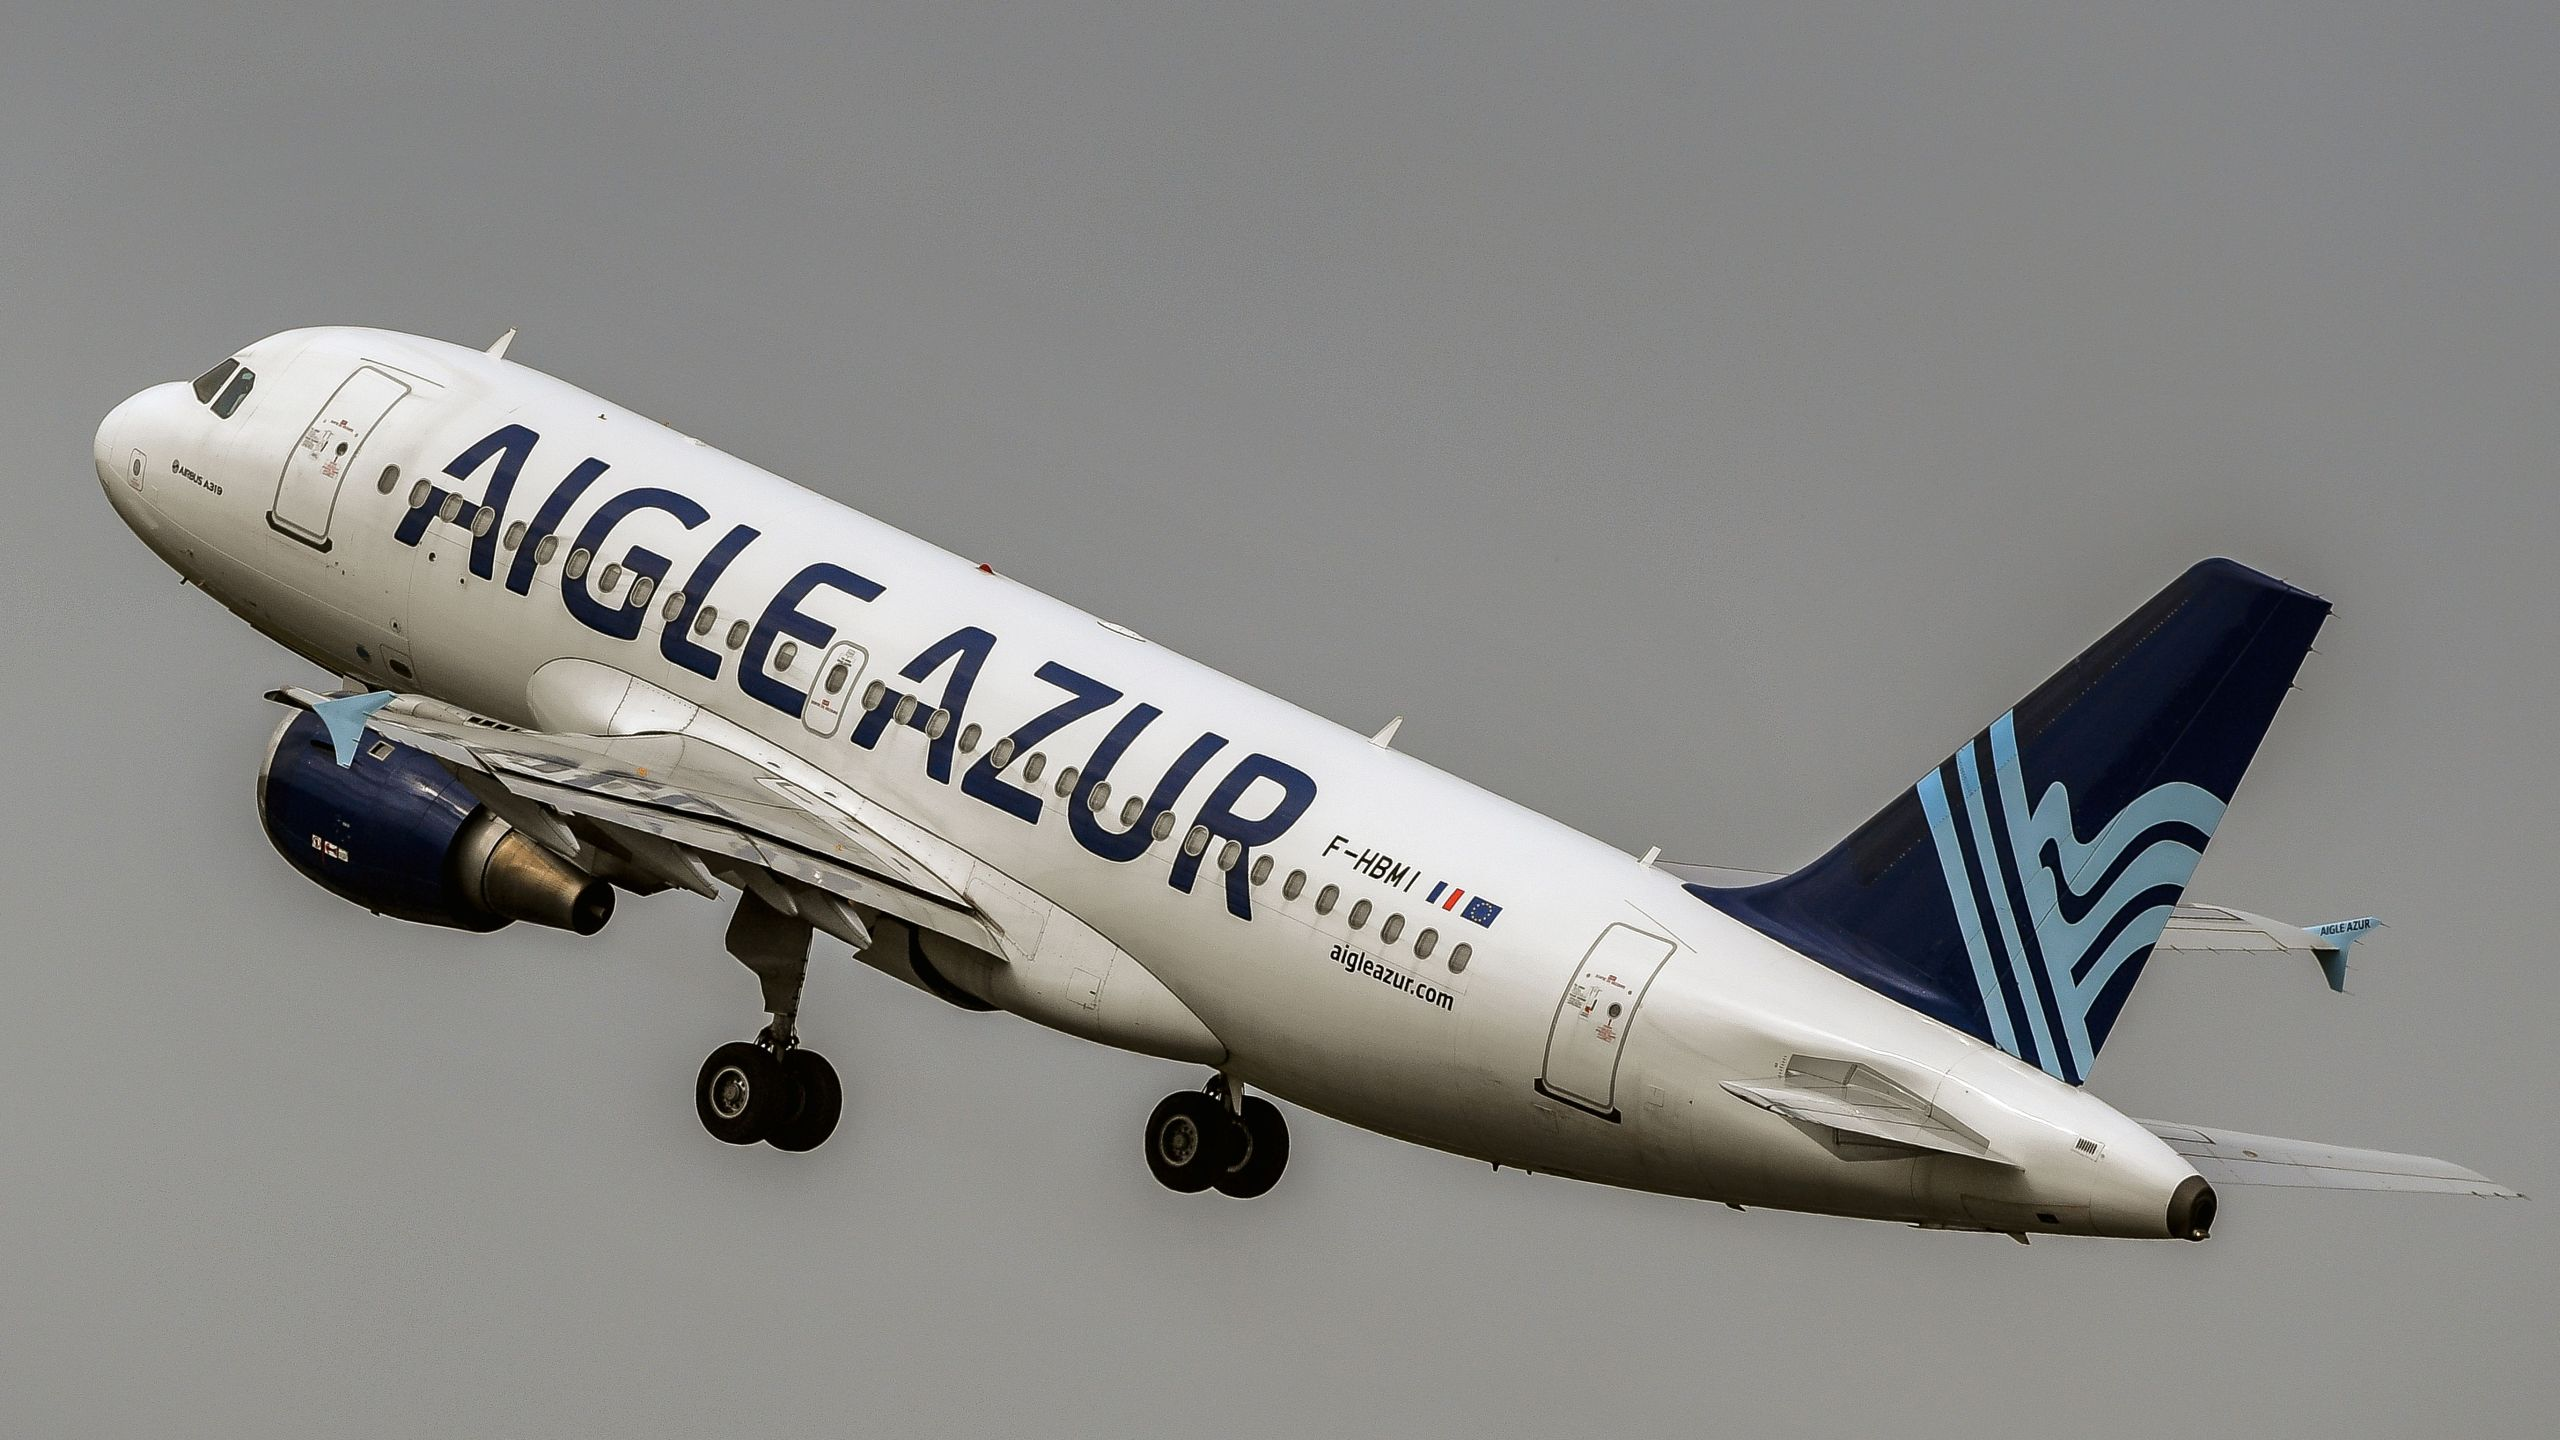 An Airbus A319 aircraft of Weaving group's French airline Aigle Azur takes off from Lille Airport in Lesquin, northern France on August 25, 2017. (Credit: PHILIPPE HUGUEN/AFP/Getty Images)